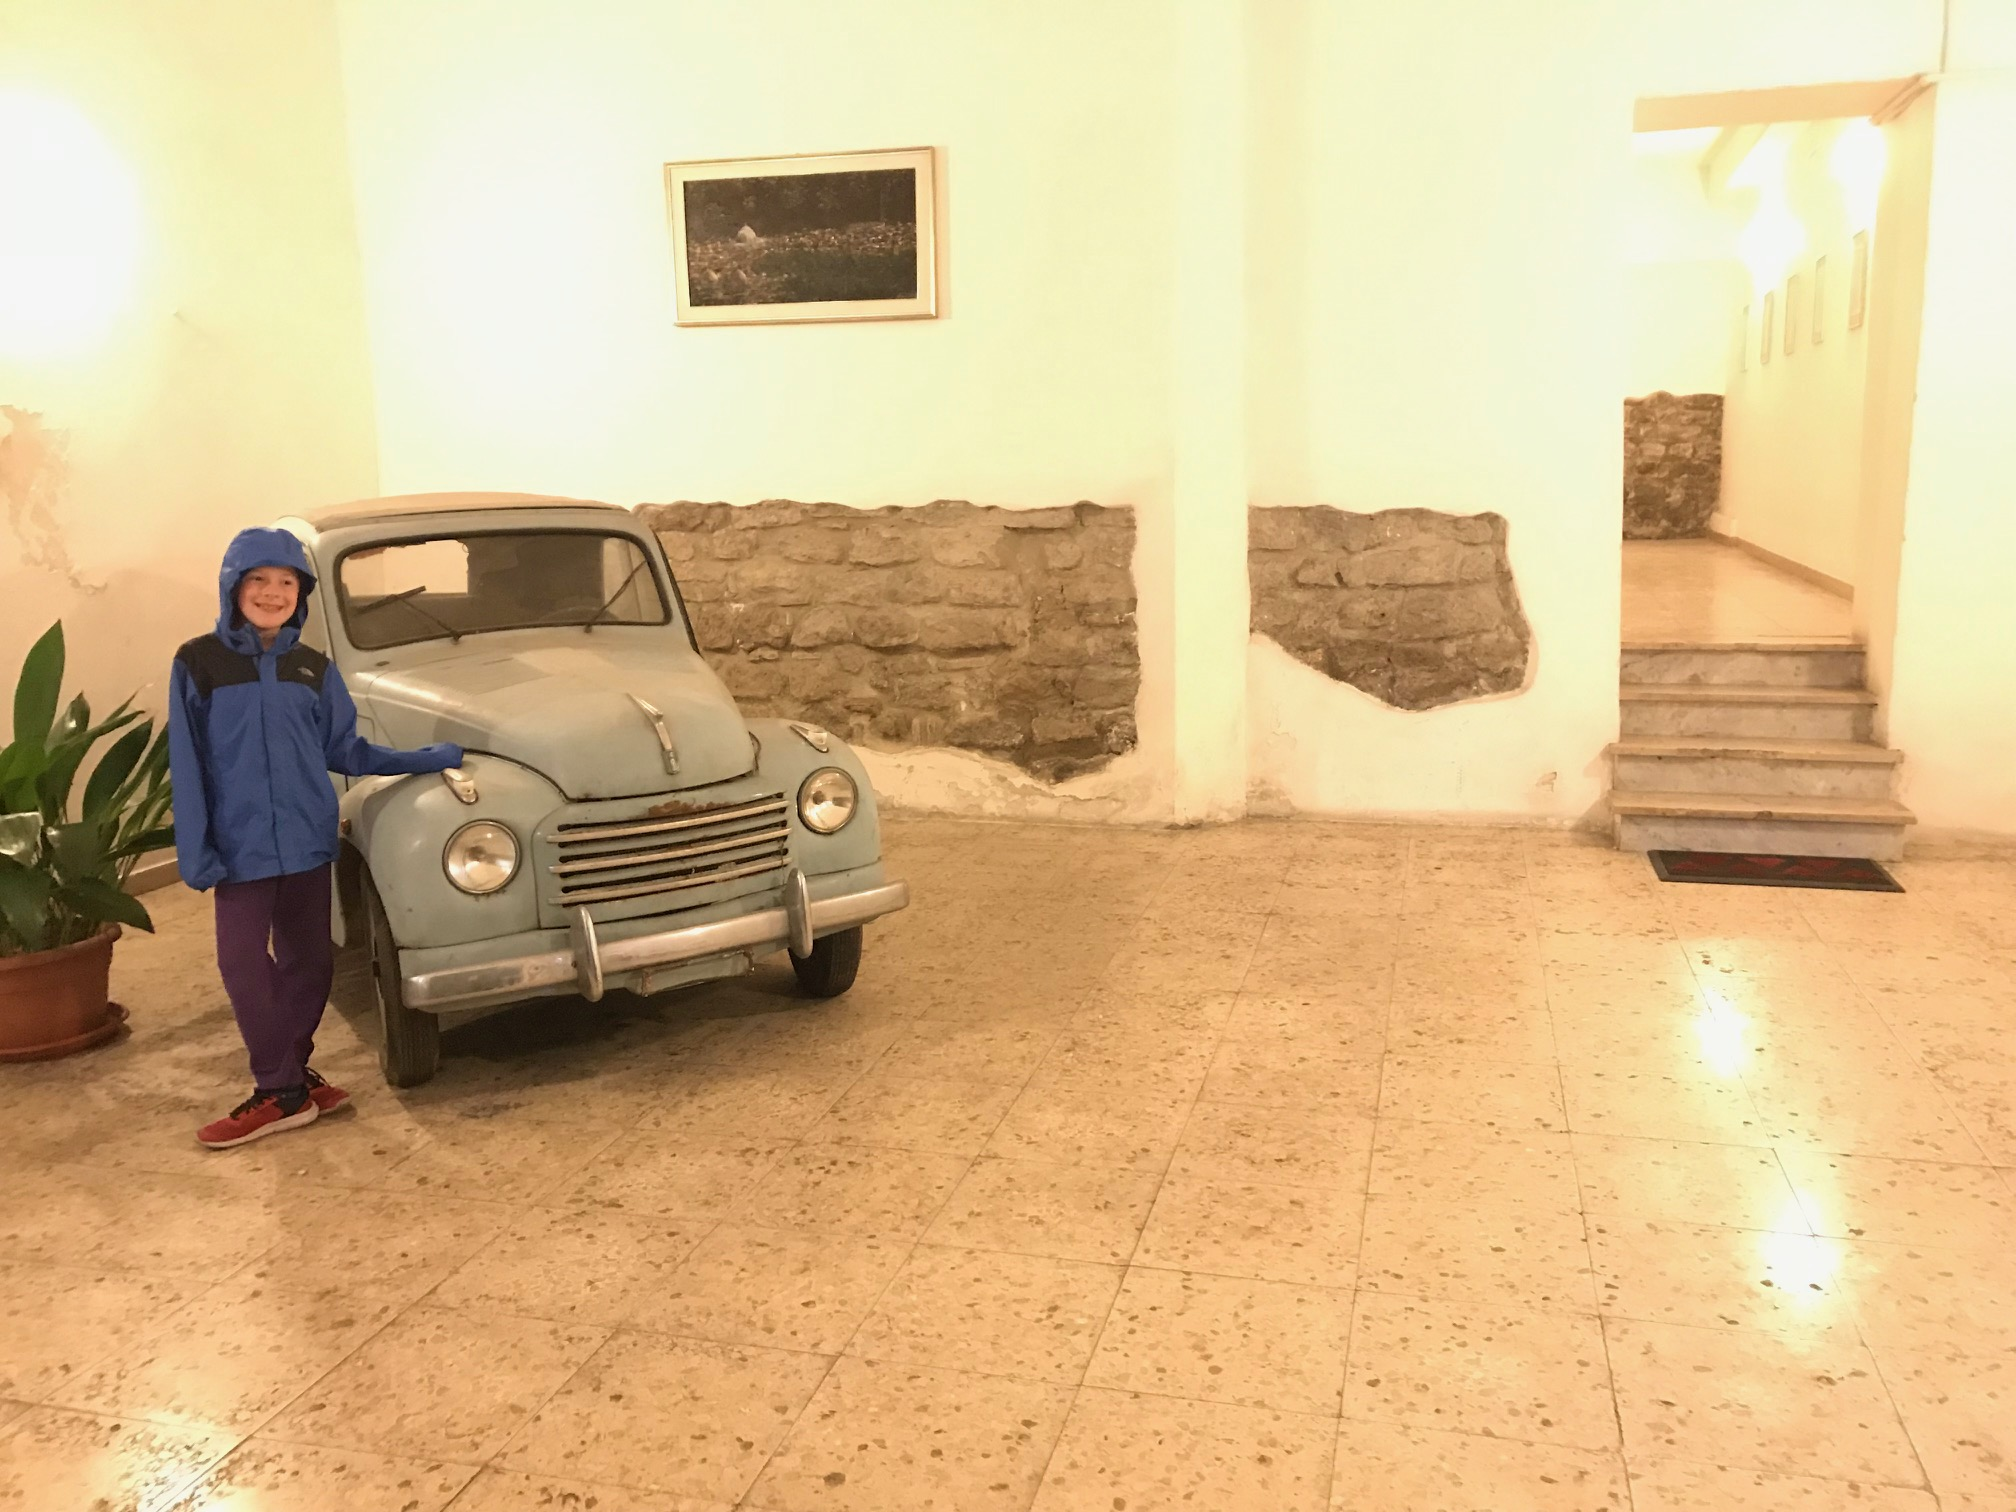 A boy standing next to a small, blue car inside a building lobby